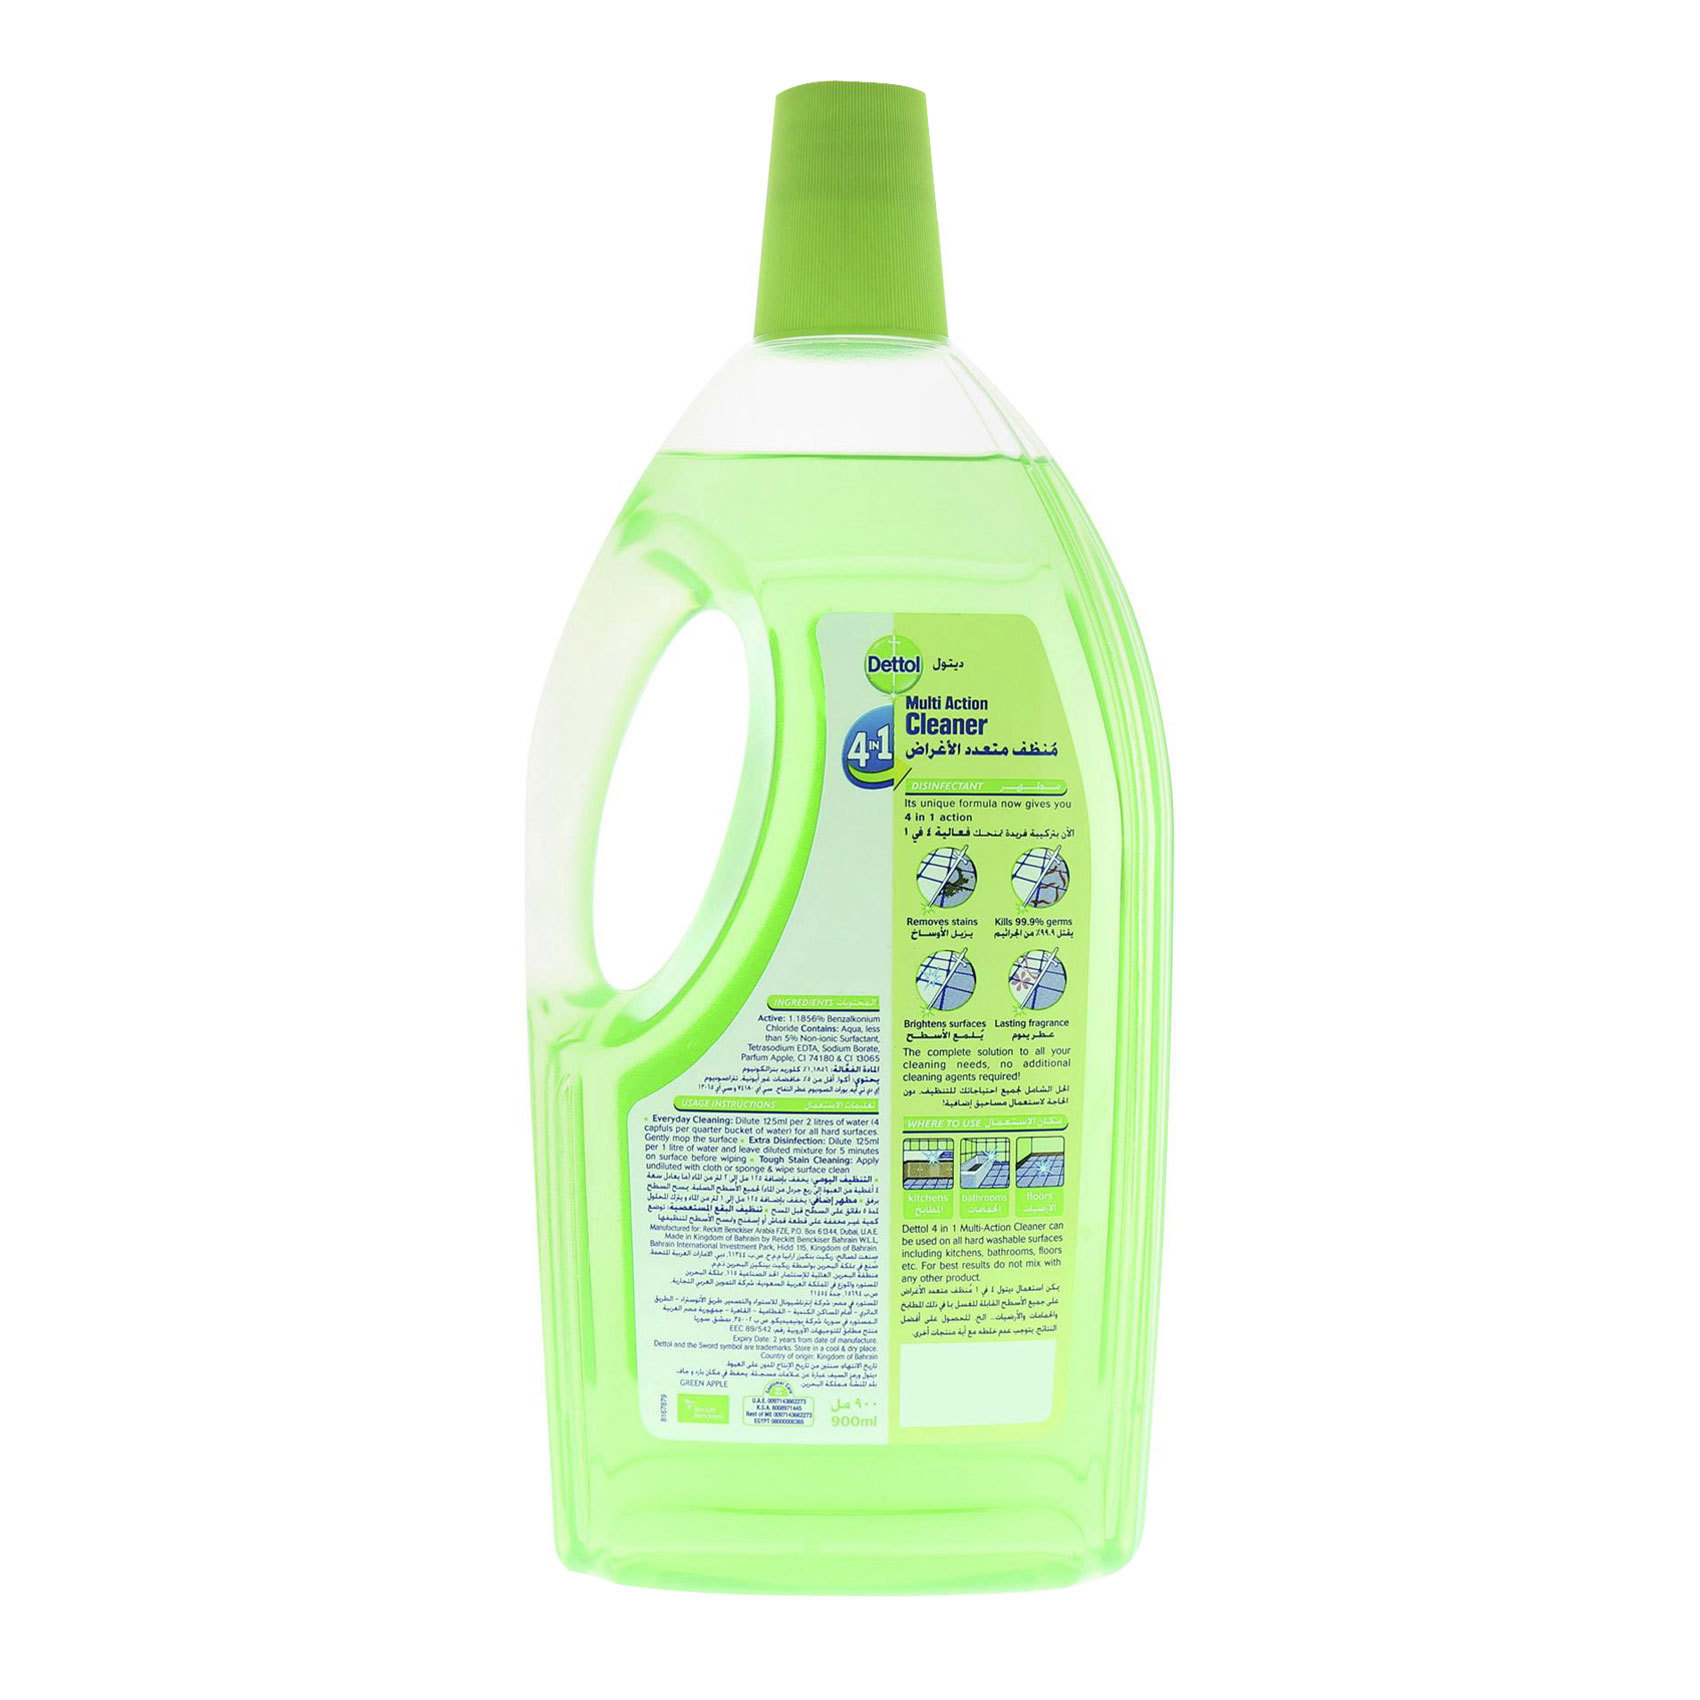 DETTOL MAC 4N1 GREEN APPLE 900ML